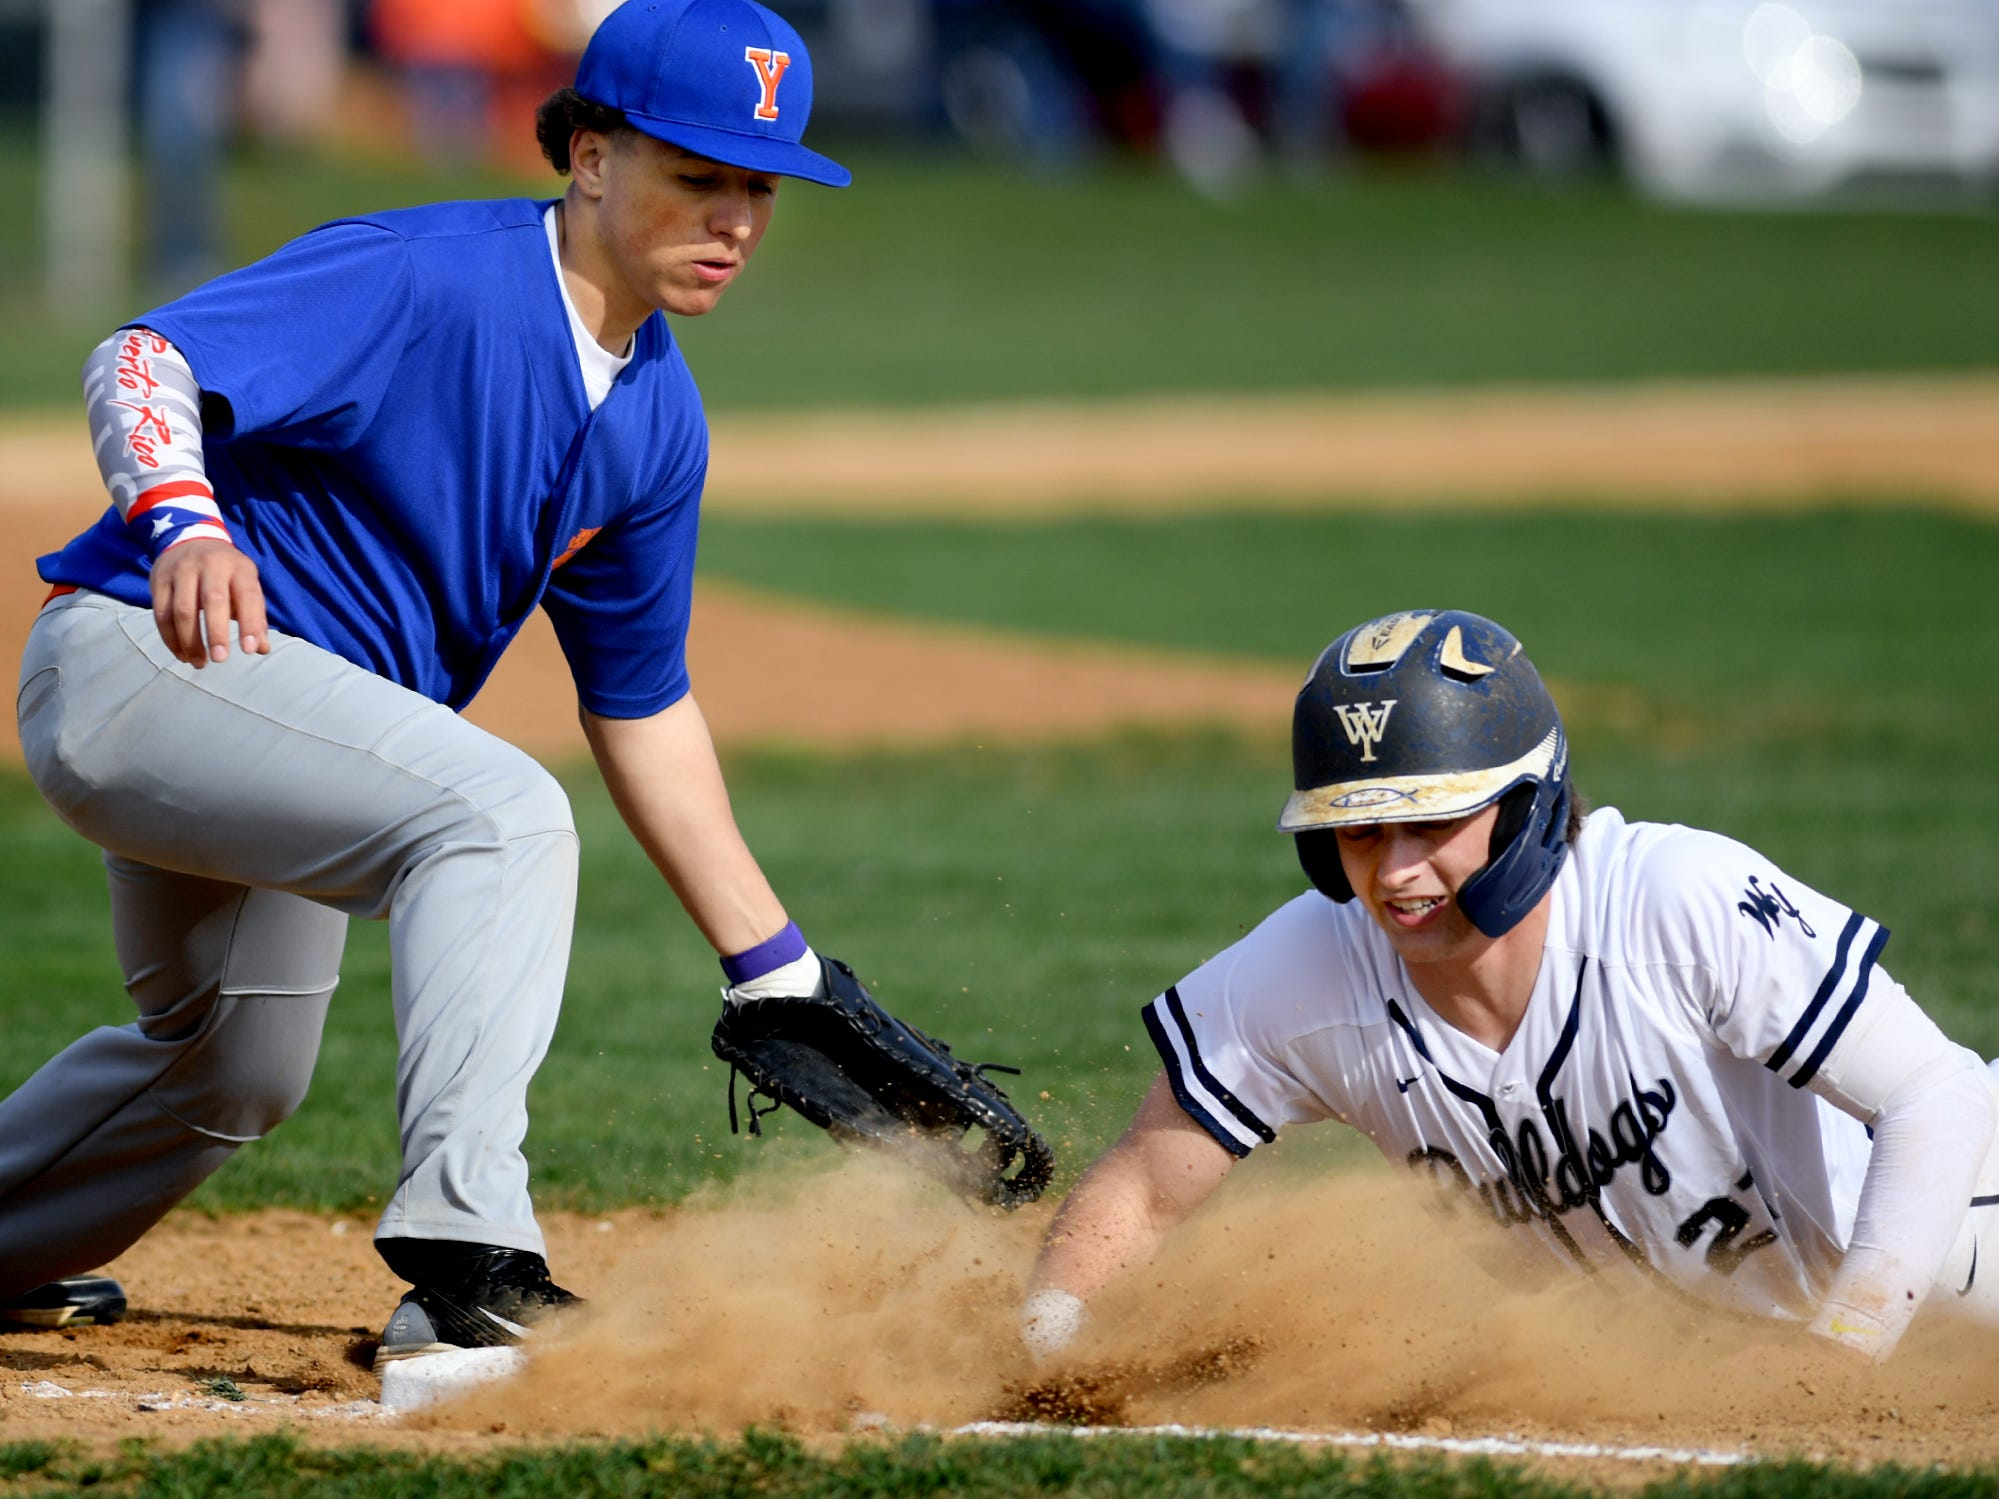 West York's Justin Wetzel gets back to first safely with York High's Dylan Rodriguez taking the throw during action at Shiloh Wednesday, April 10, 2019. Bill Kalina photo